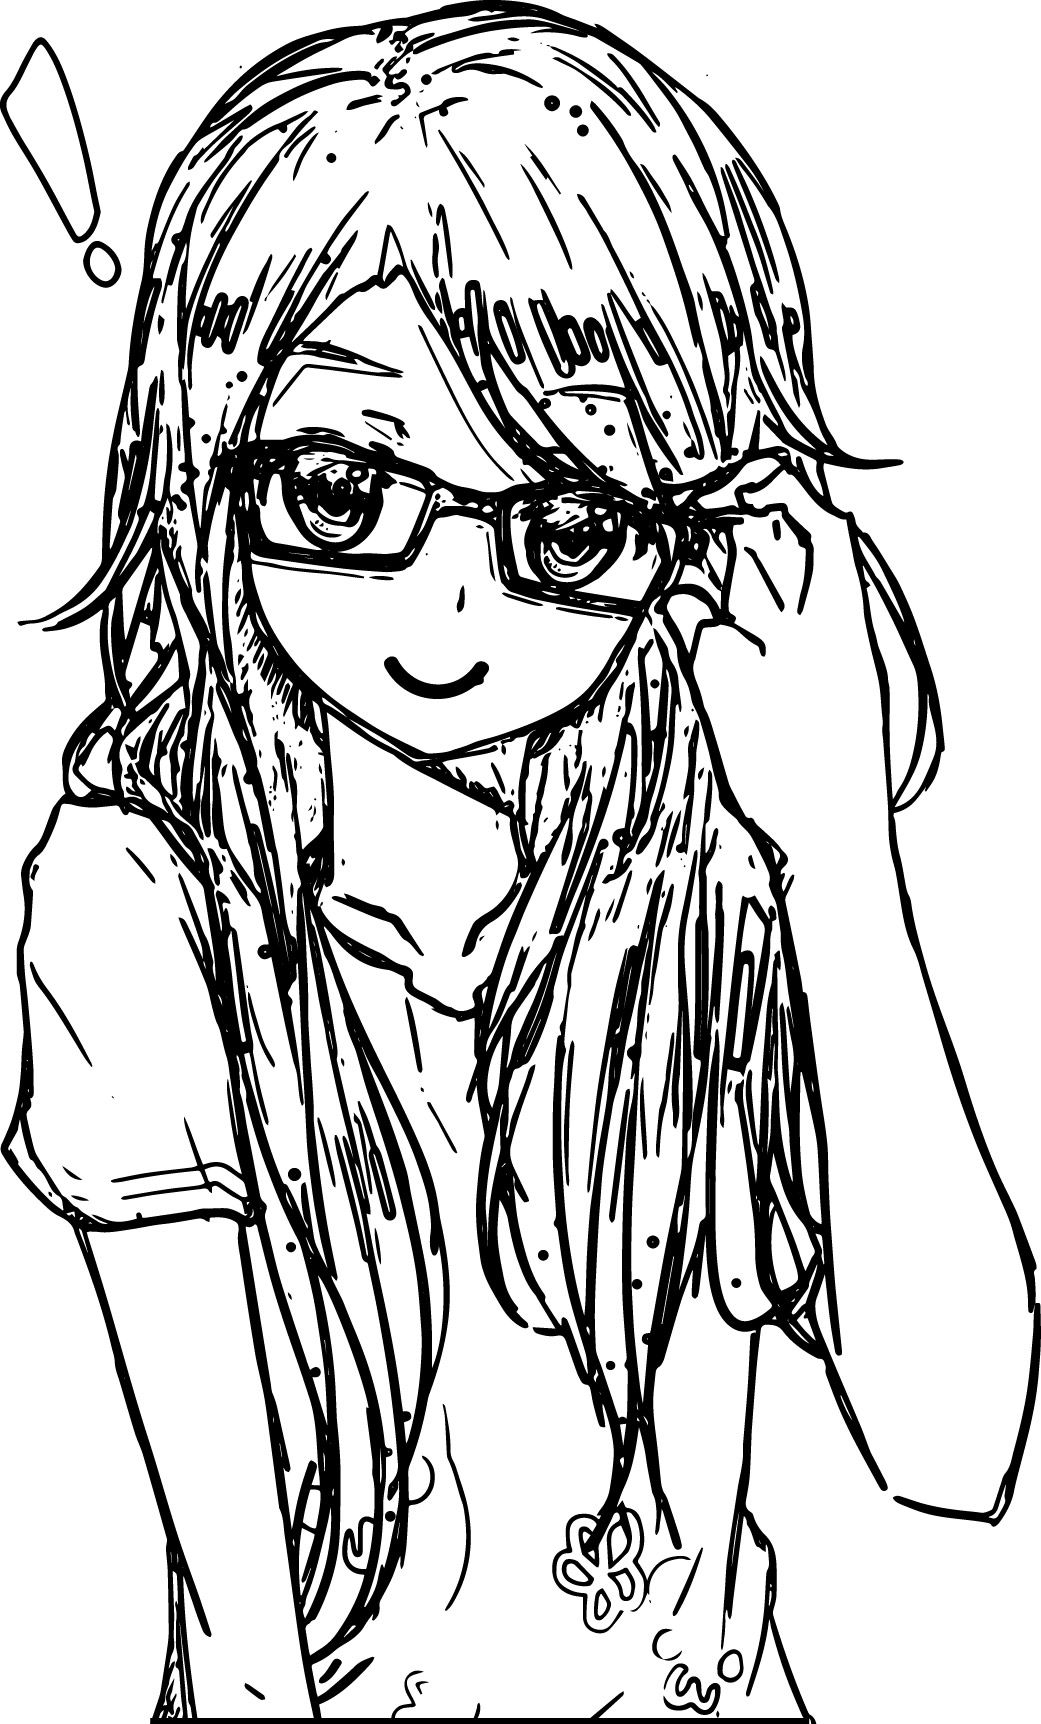 Anime Colring Pages With Awesome Anime Art Girl Glasses Coloring